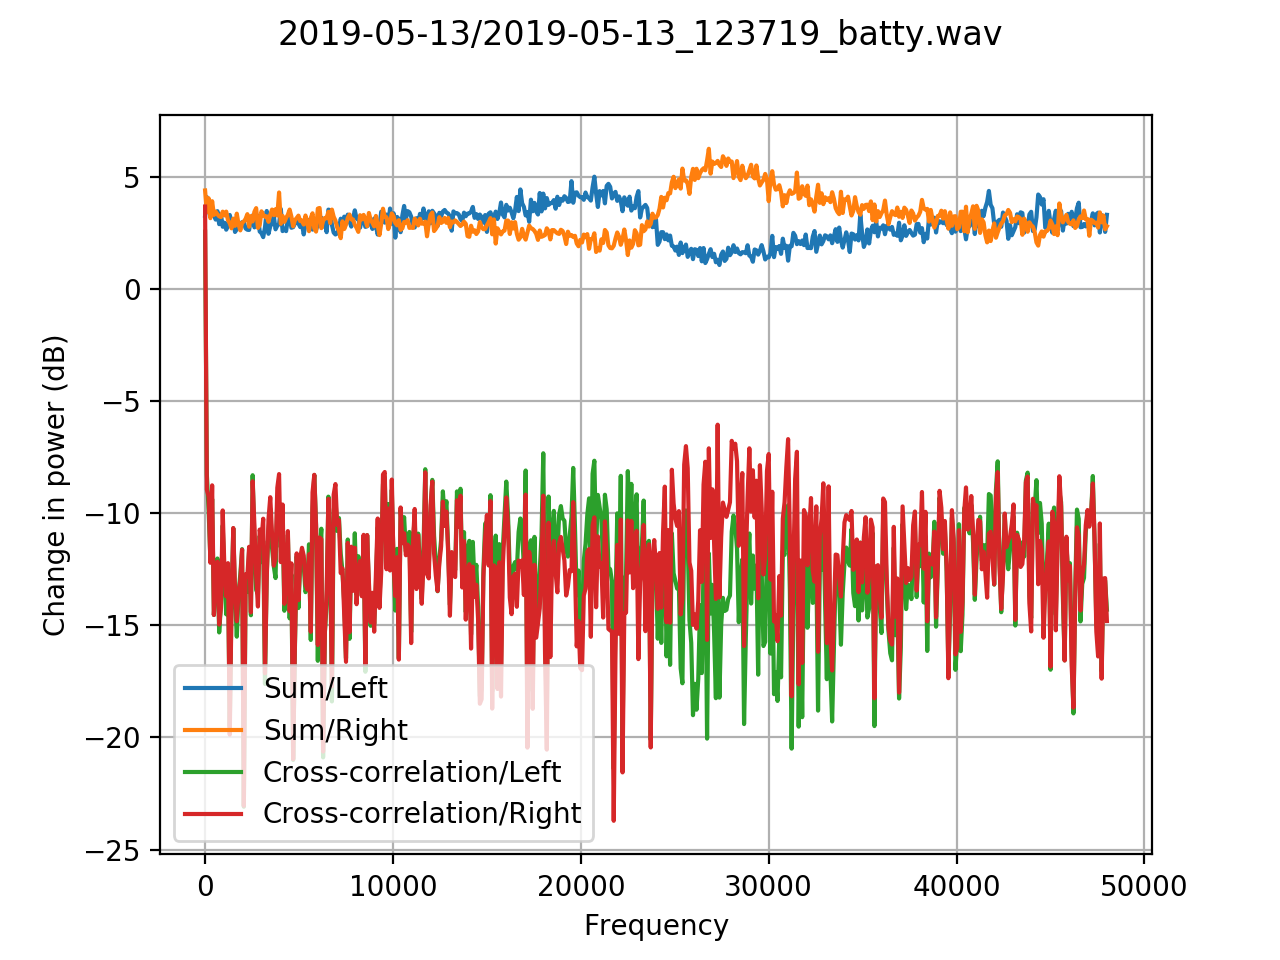 Comparison of noise floors on individual microphones with summed and crossed-correlated signals.